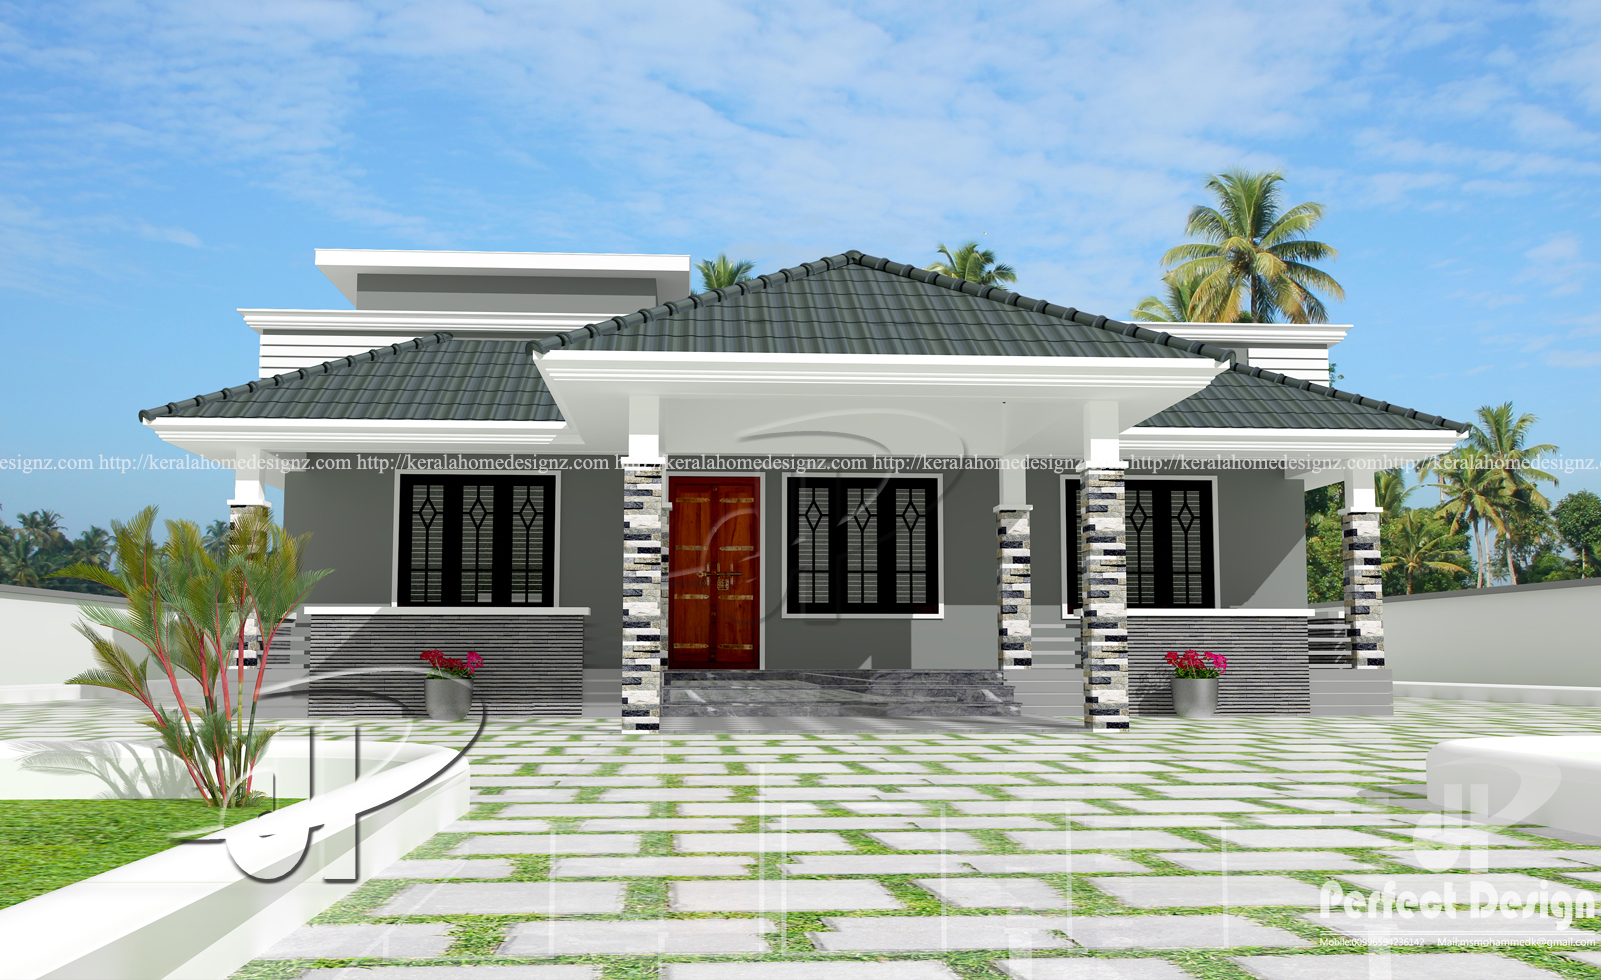 This home designed to be built in 1086 square feet 101 square meters this house have porchsit out3 bedrooms attached bathdiningliving kitchen and